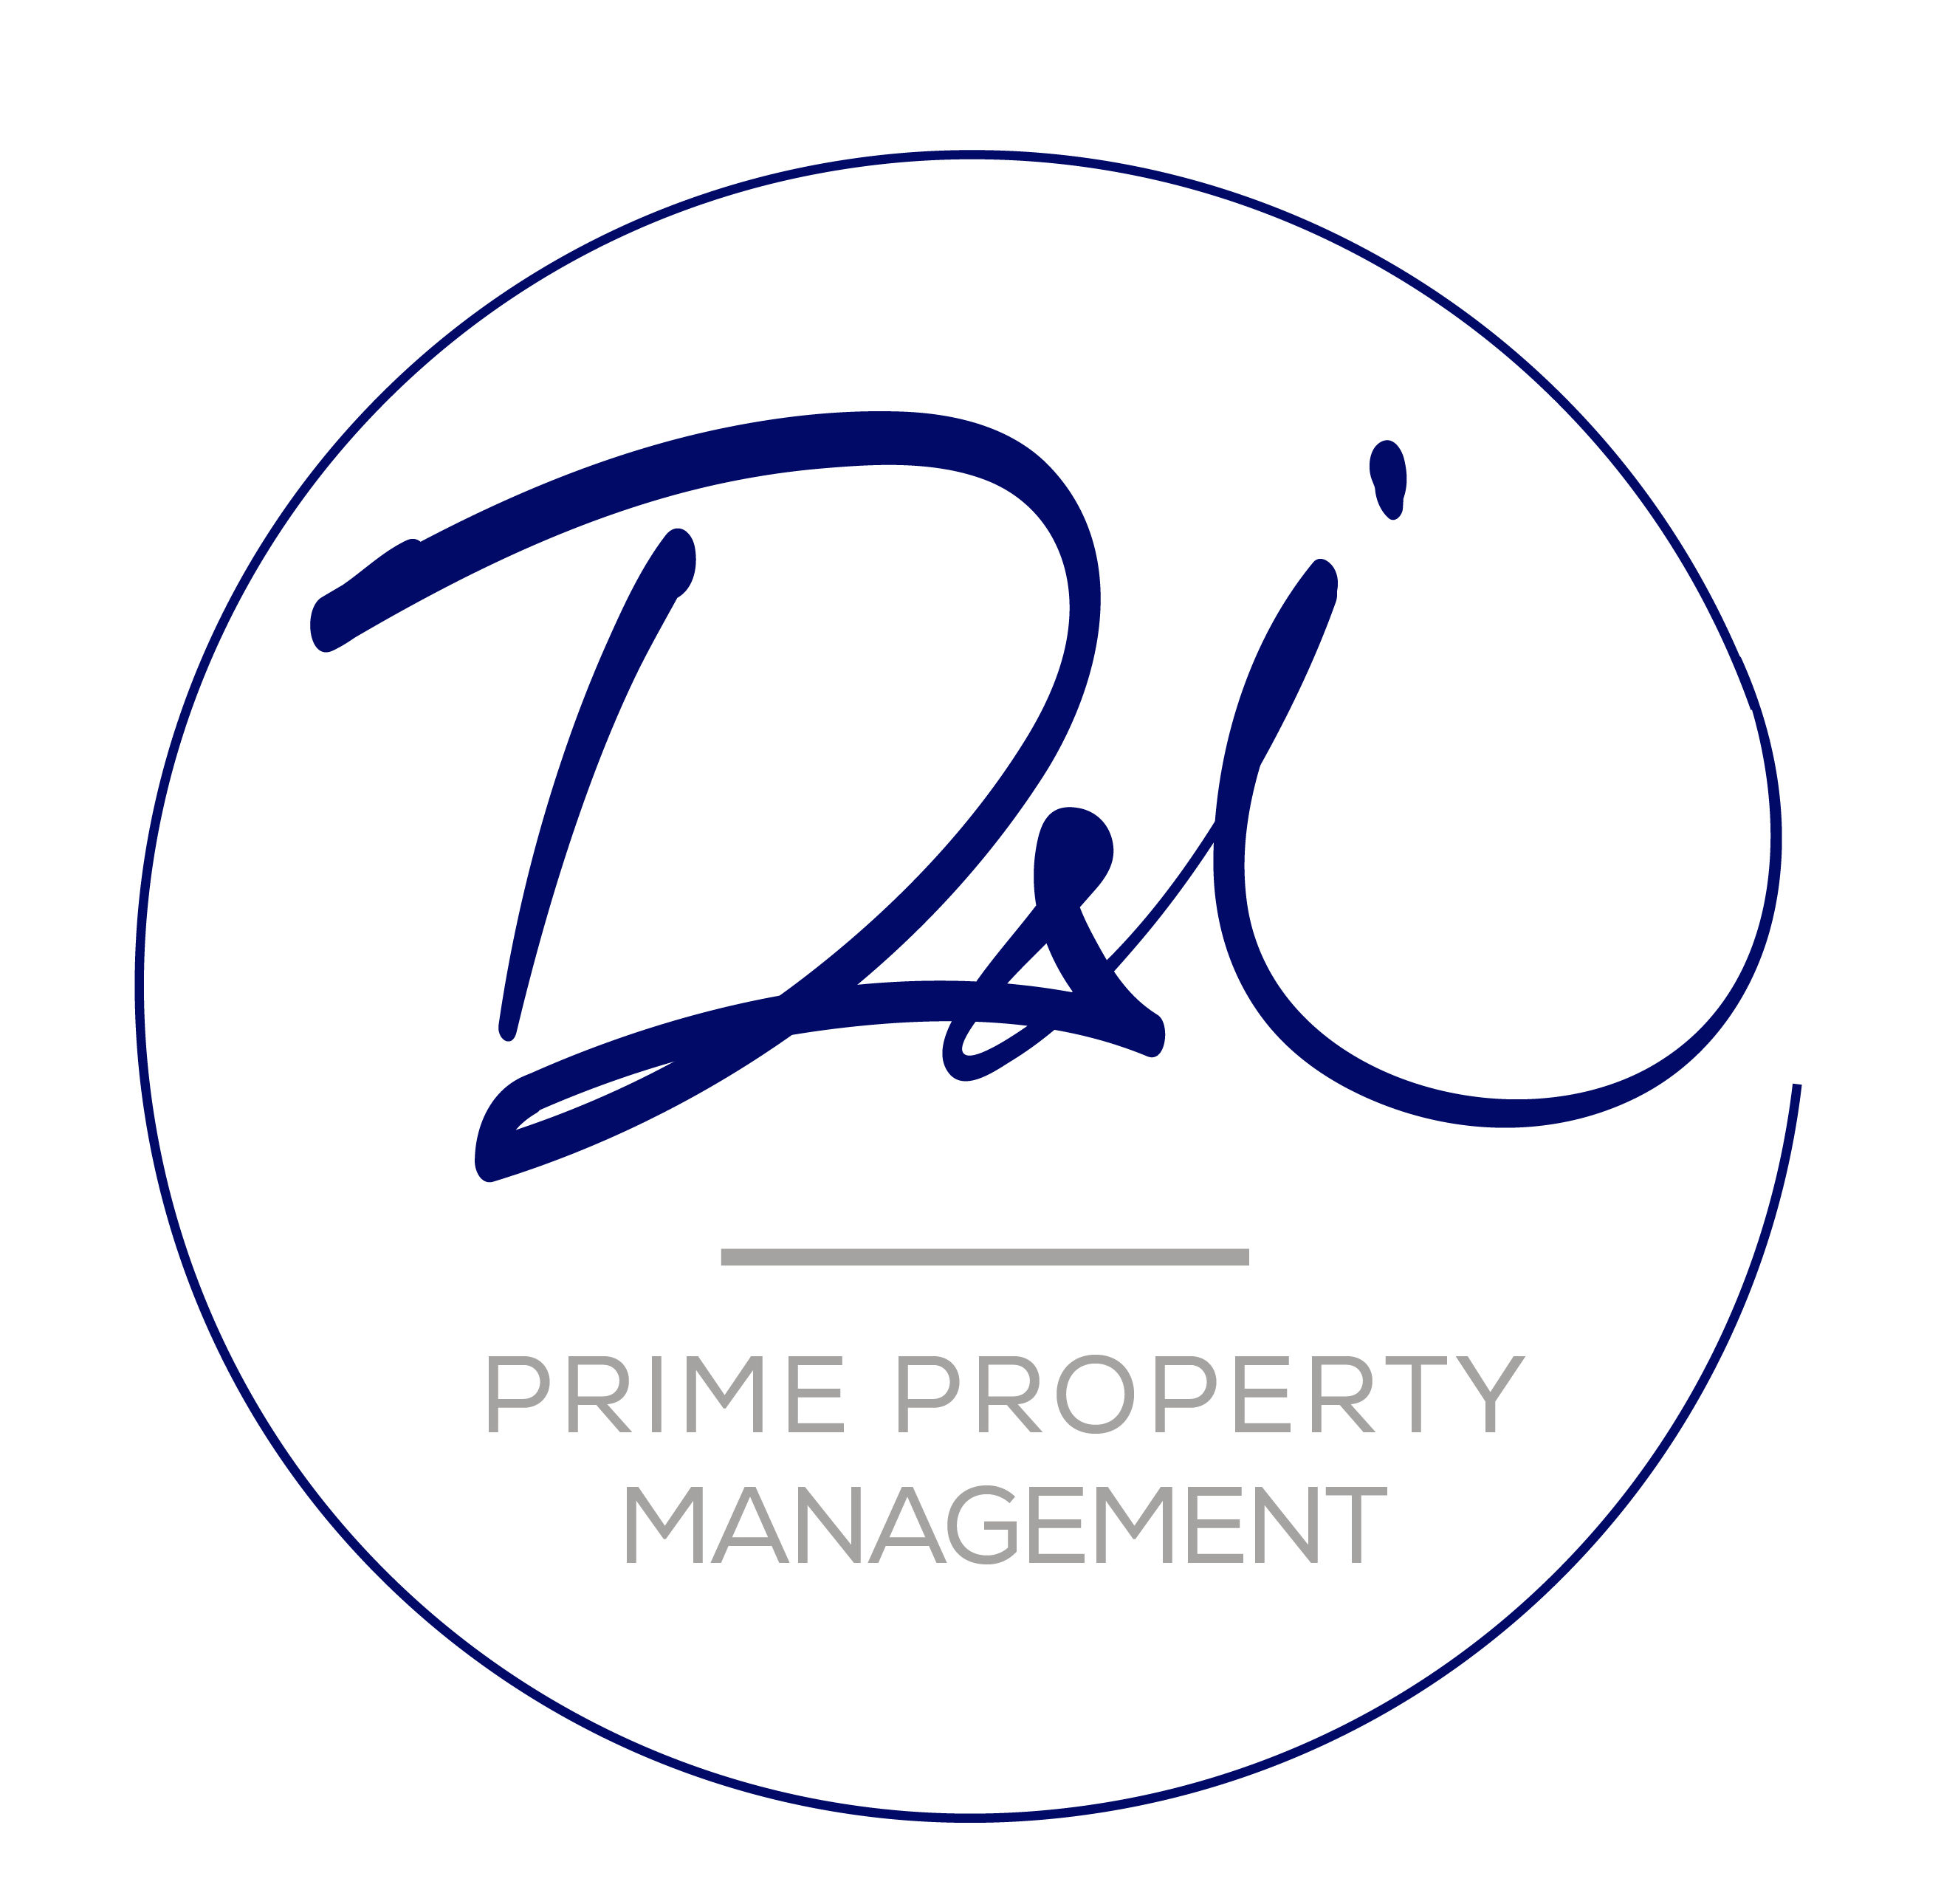 D & I Prime Property Management